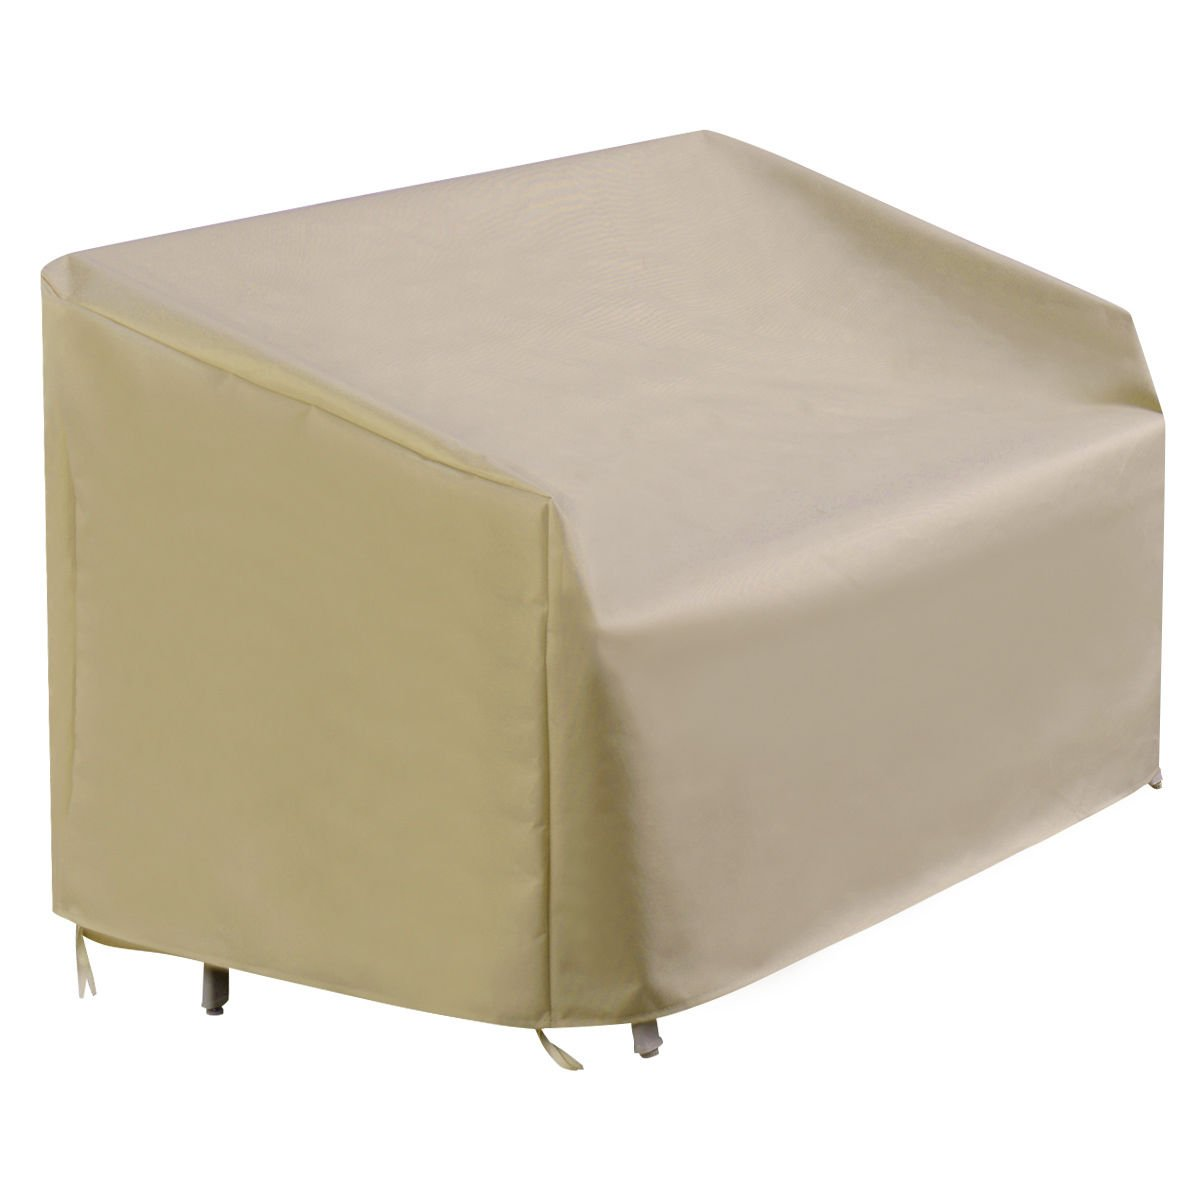 patcharaporn Waterproof High Back Patio Loveseat Bench Cover Outdoor Furniture Protection